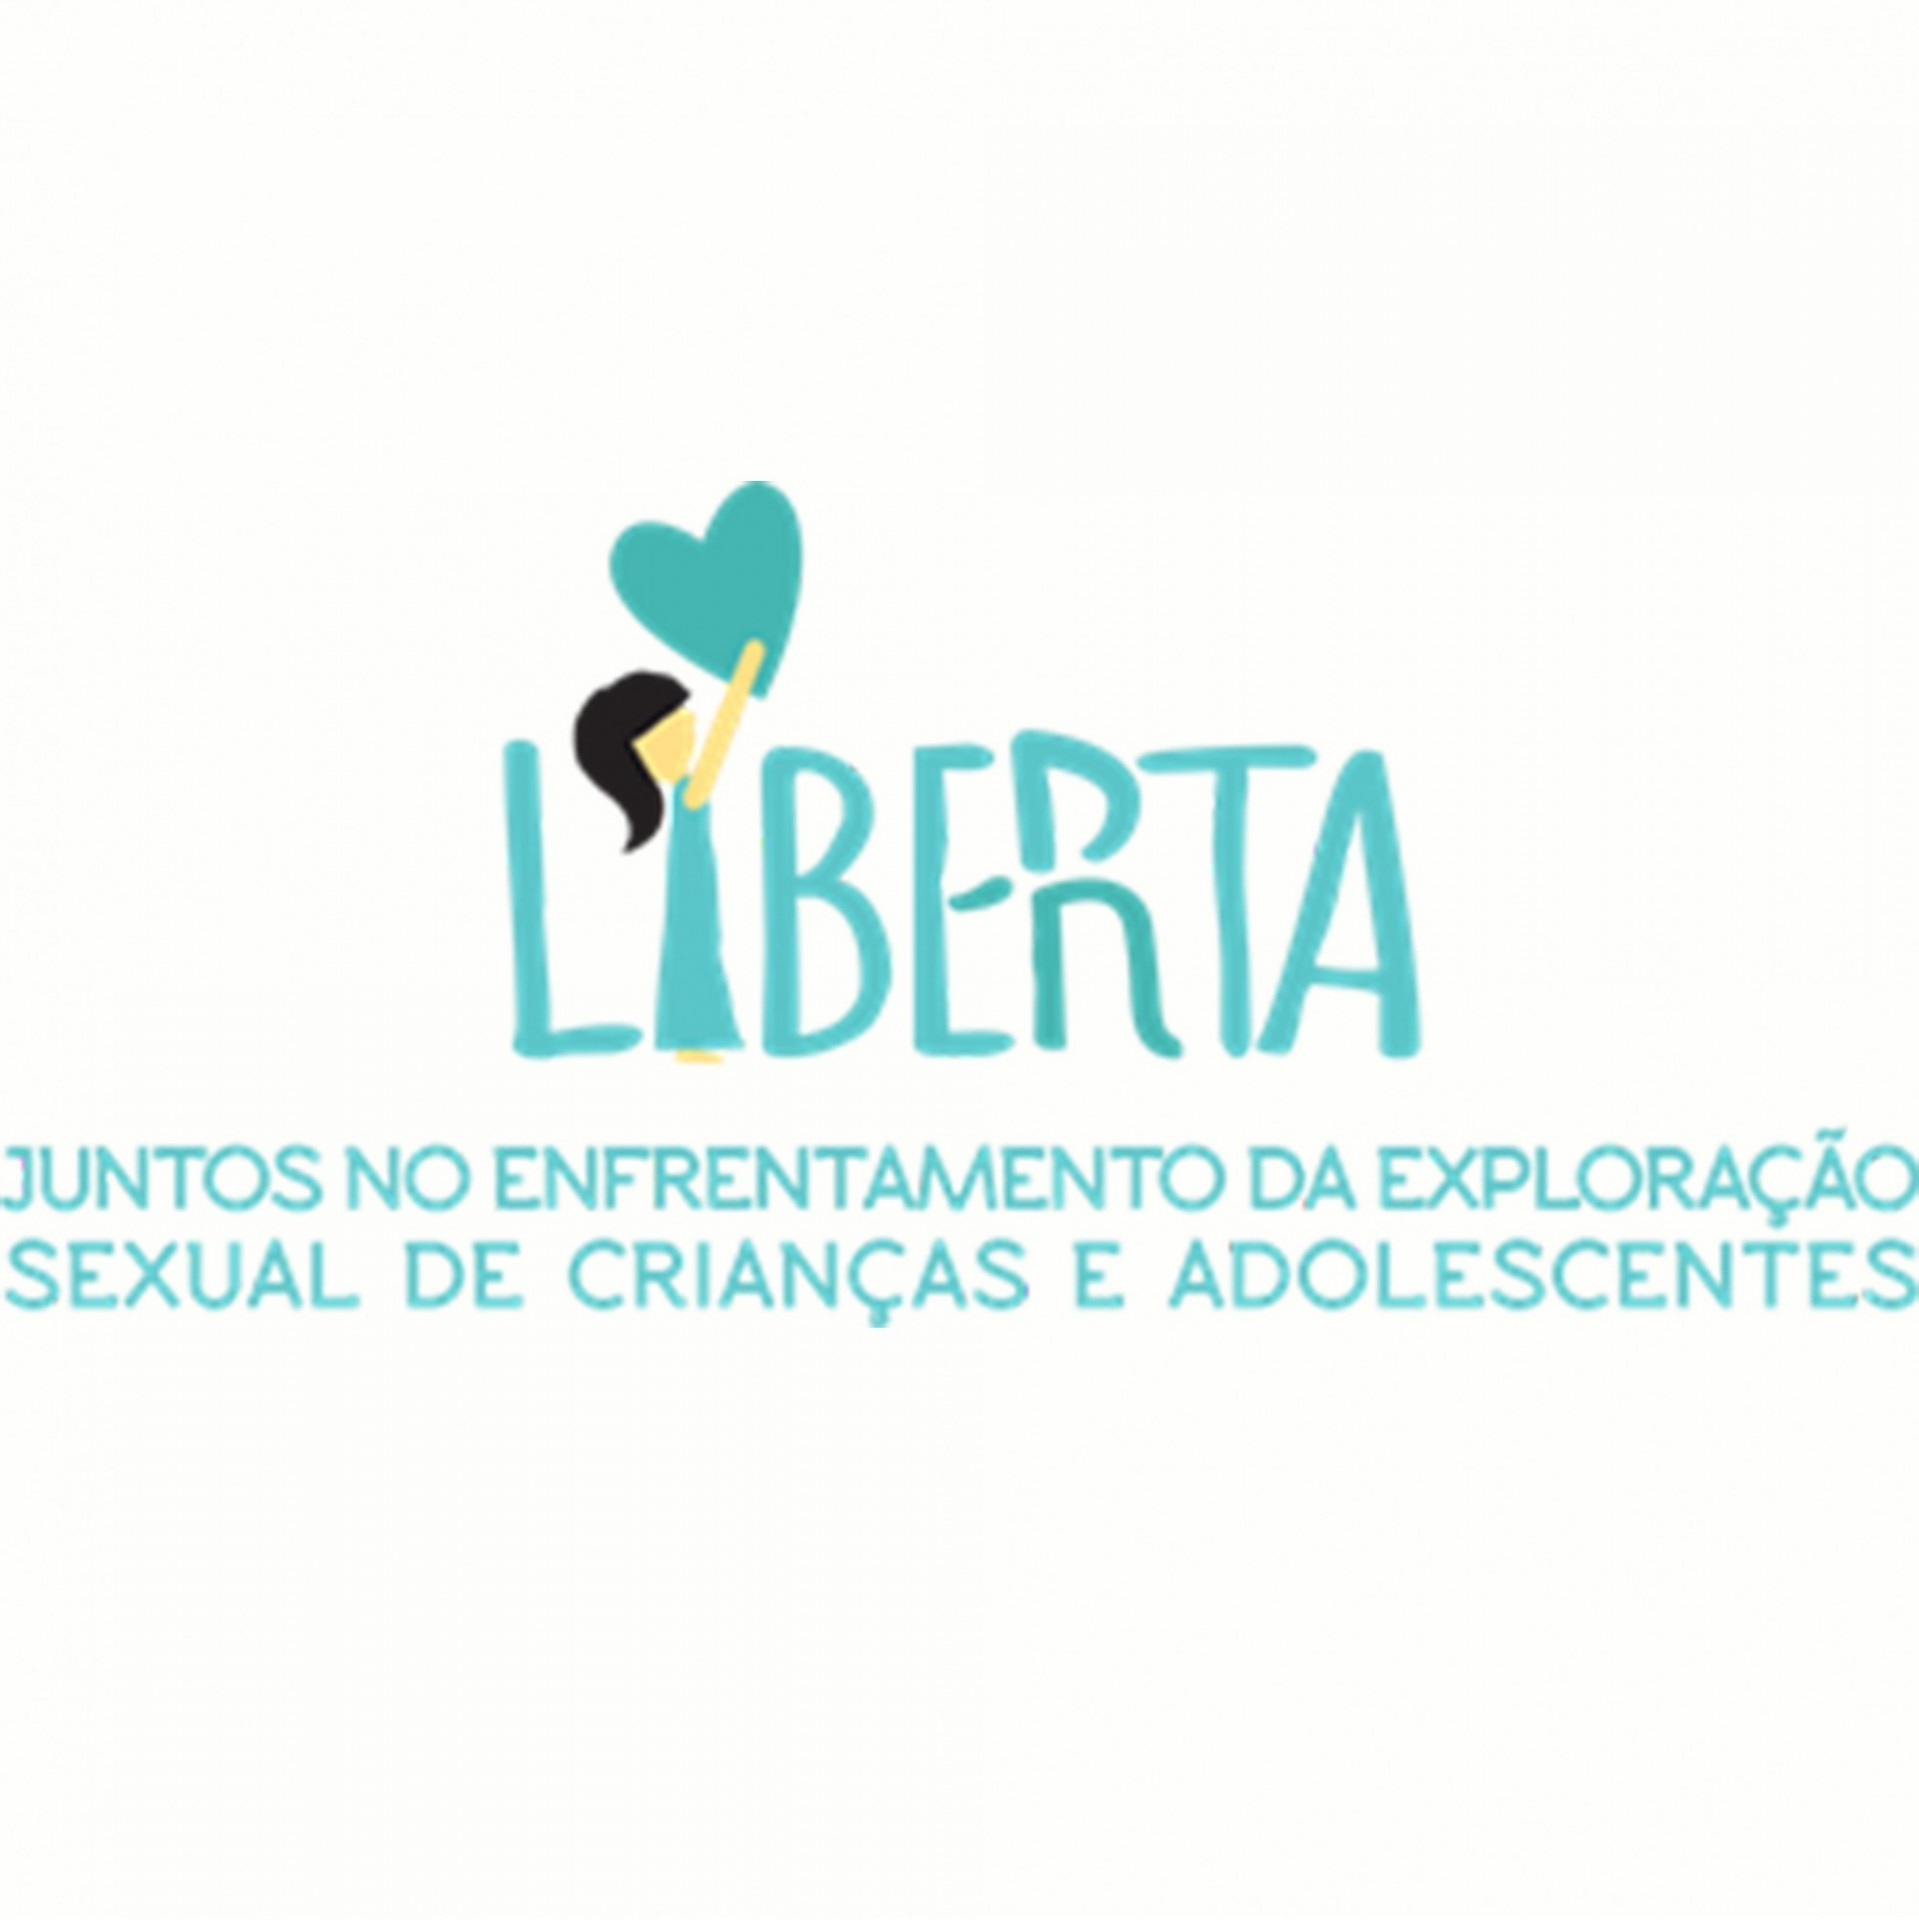 photo of Instituto Liberta